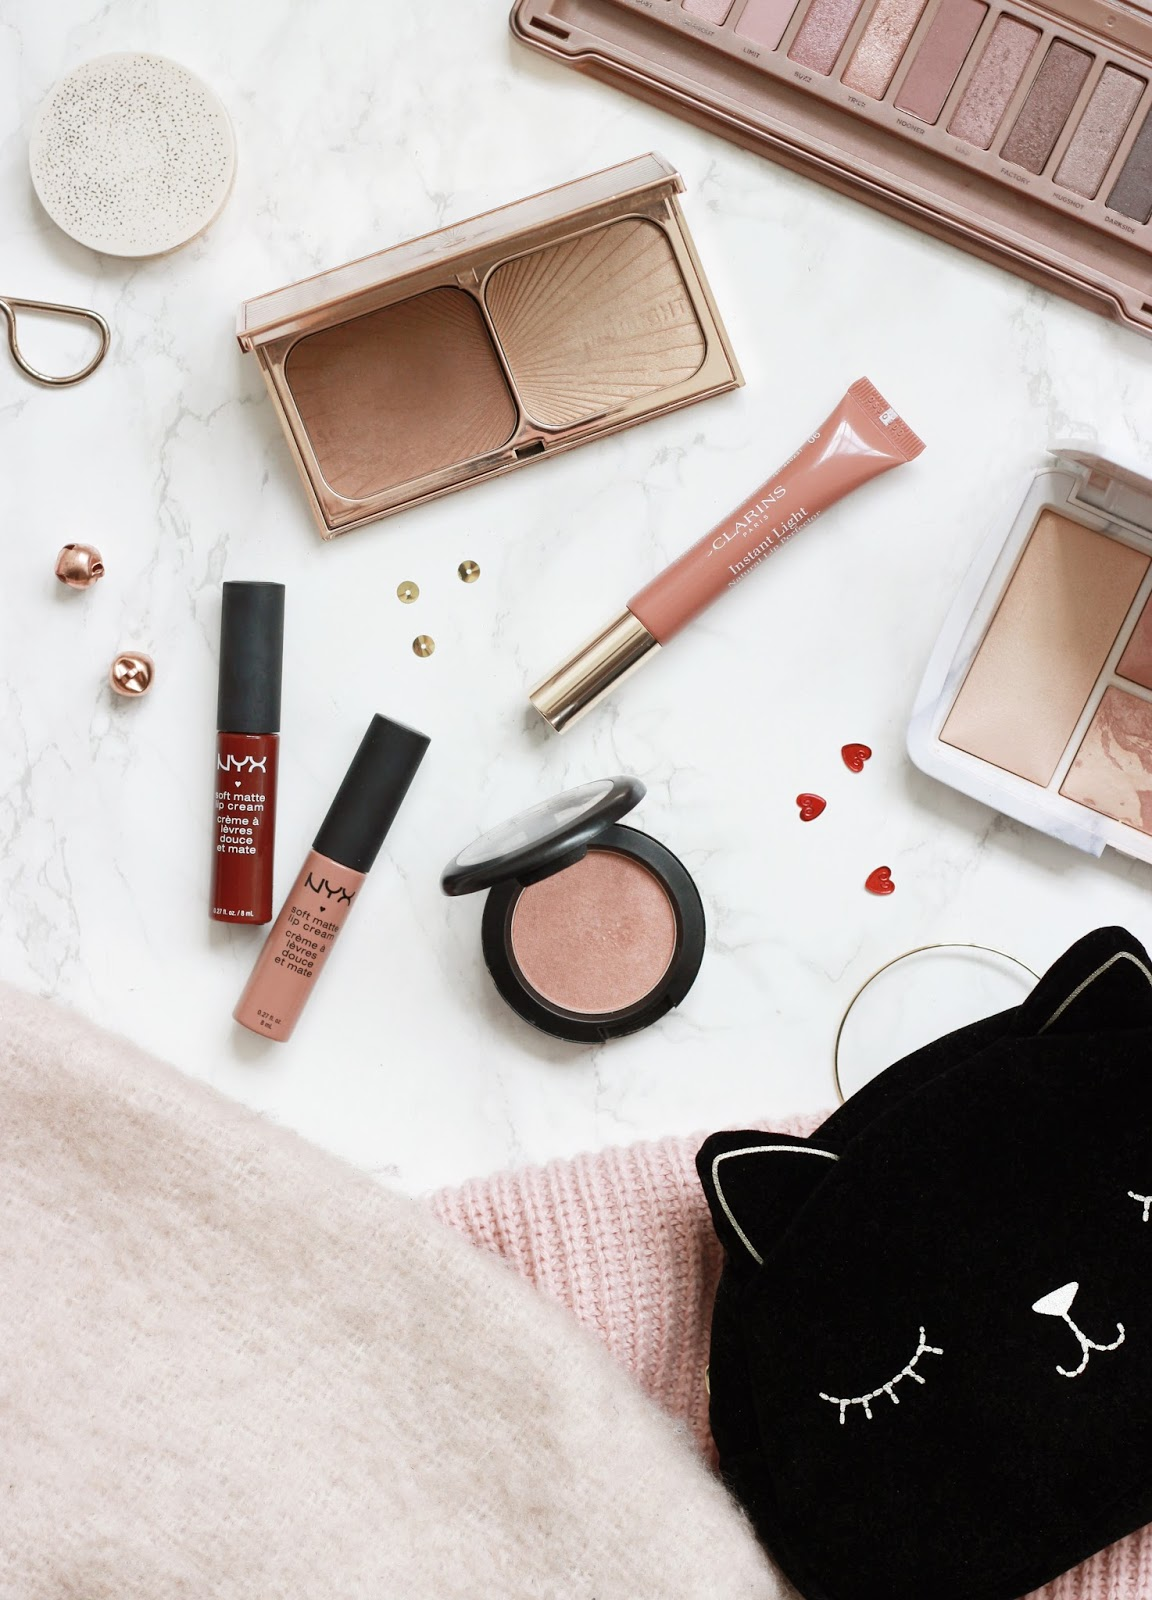 Are these products worth the hype?